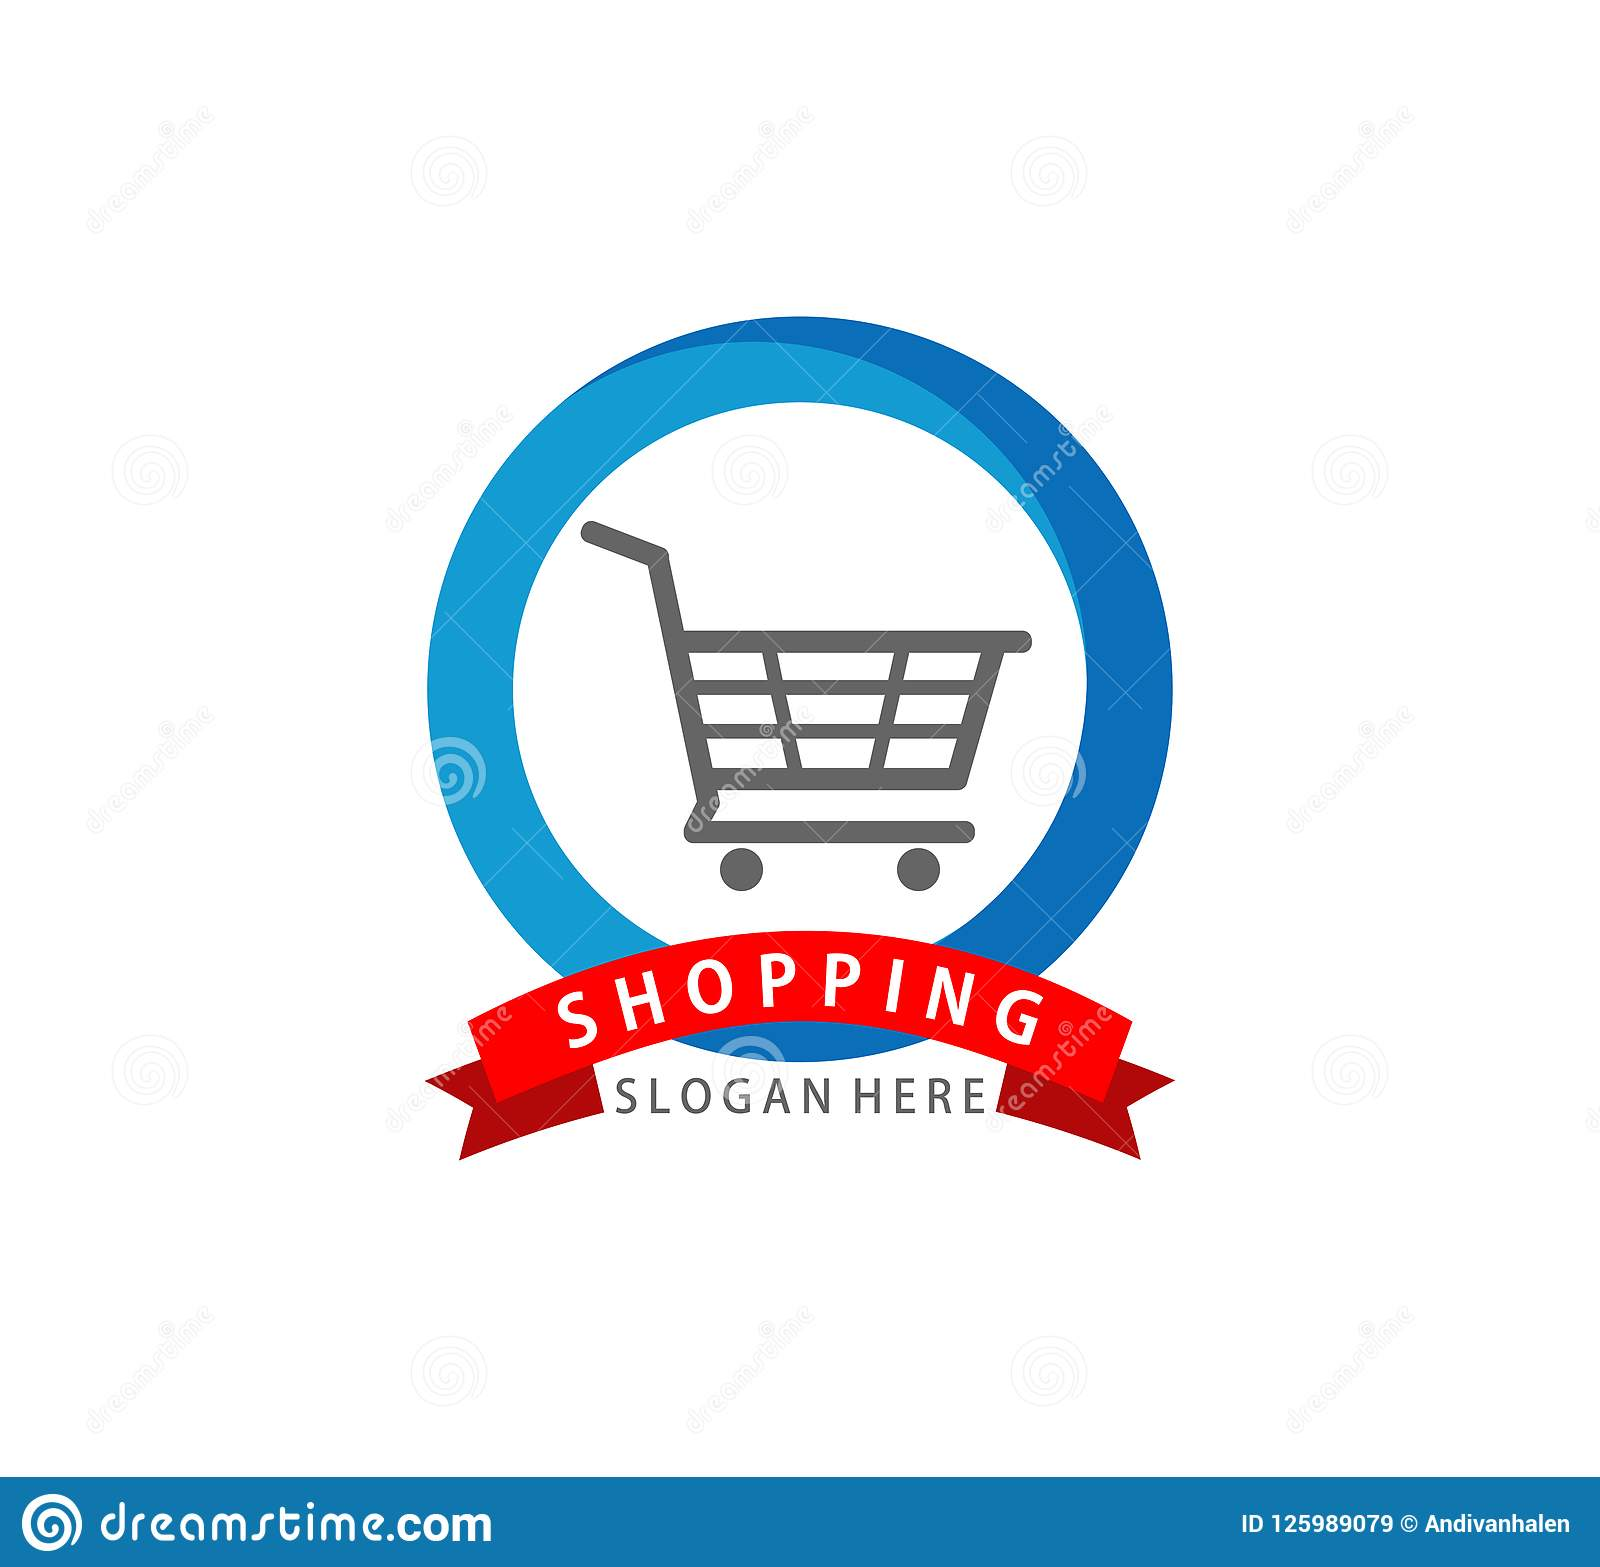 Shopping Cart Banners Organization Structure Banners